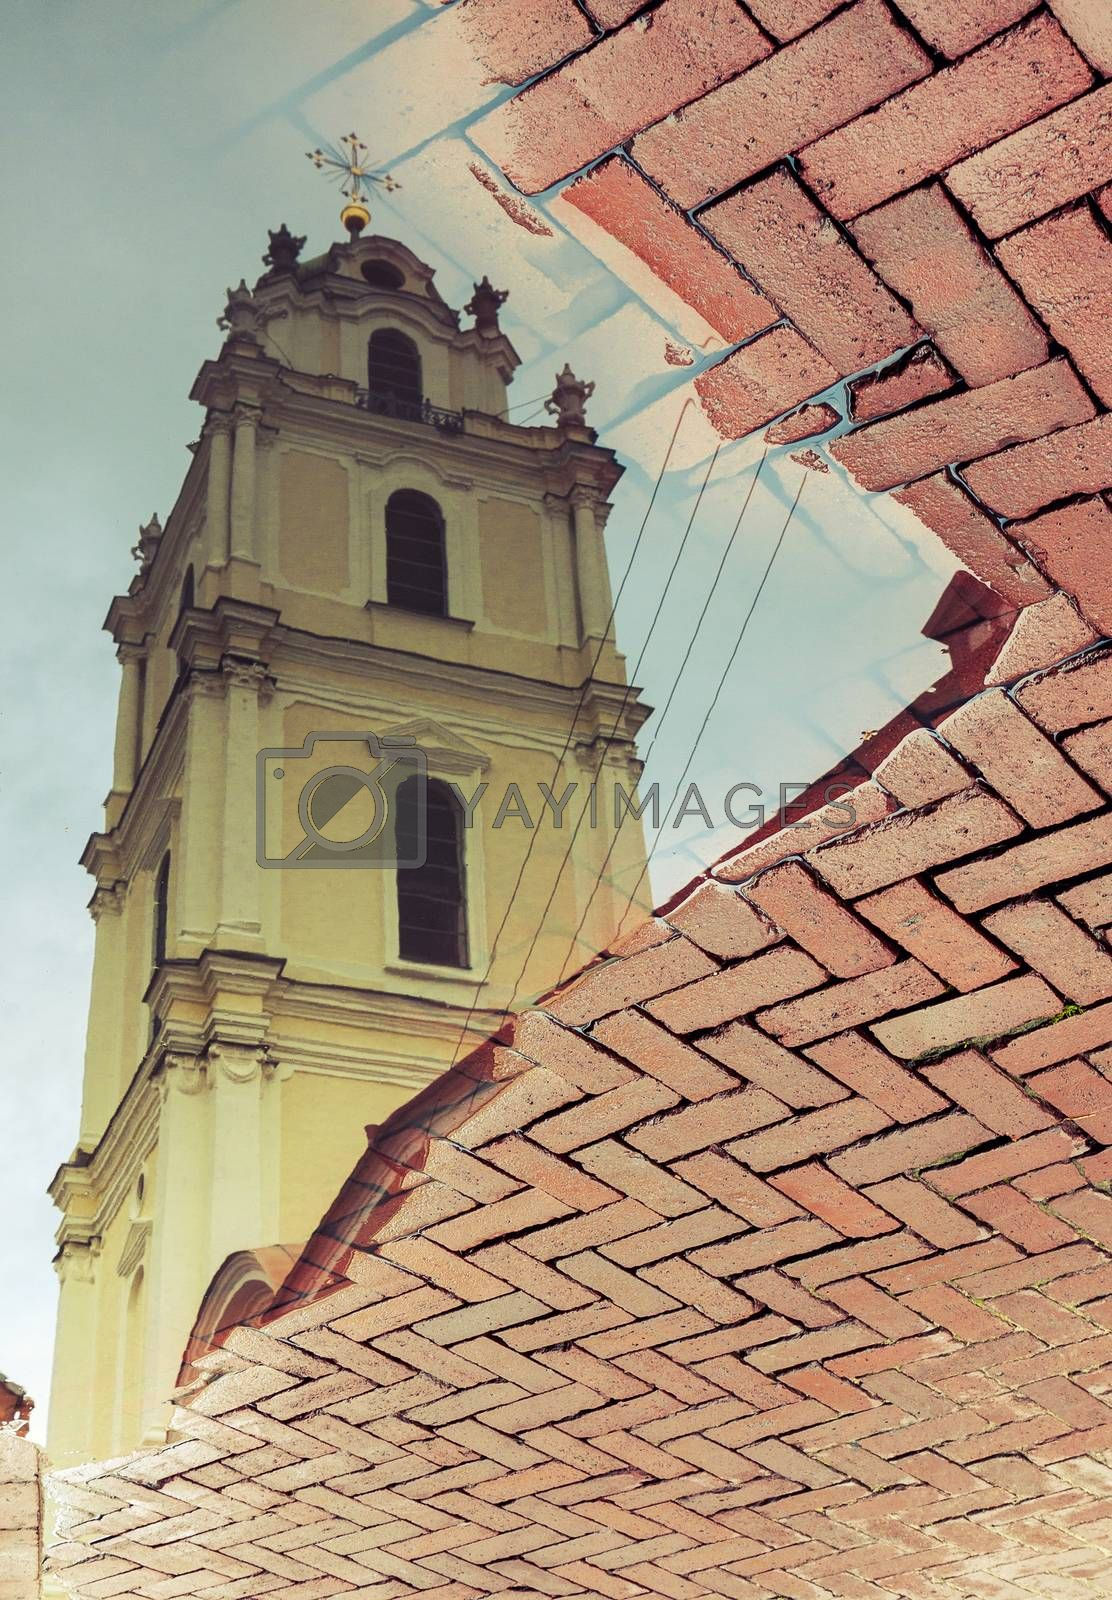 Old church in Vilnius, Lithuania, reflected in water puddle on cobblestone pavement